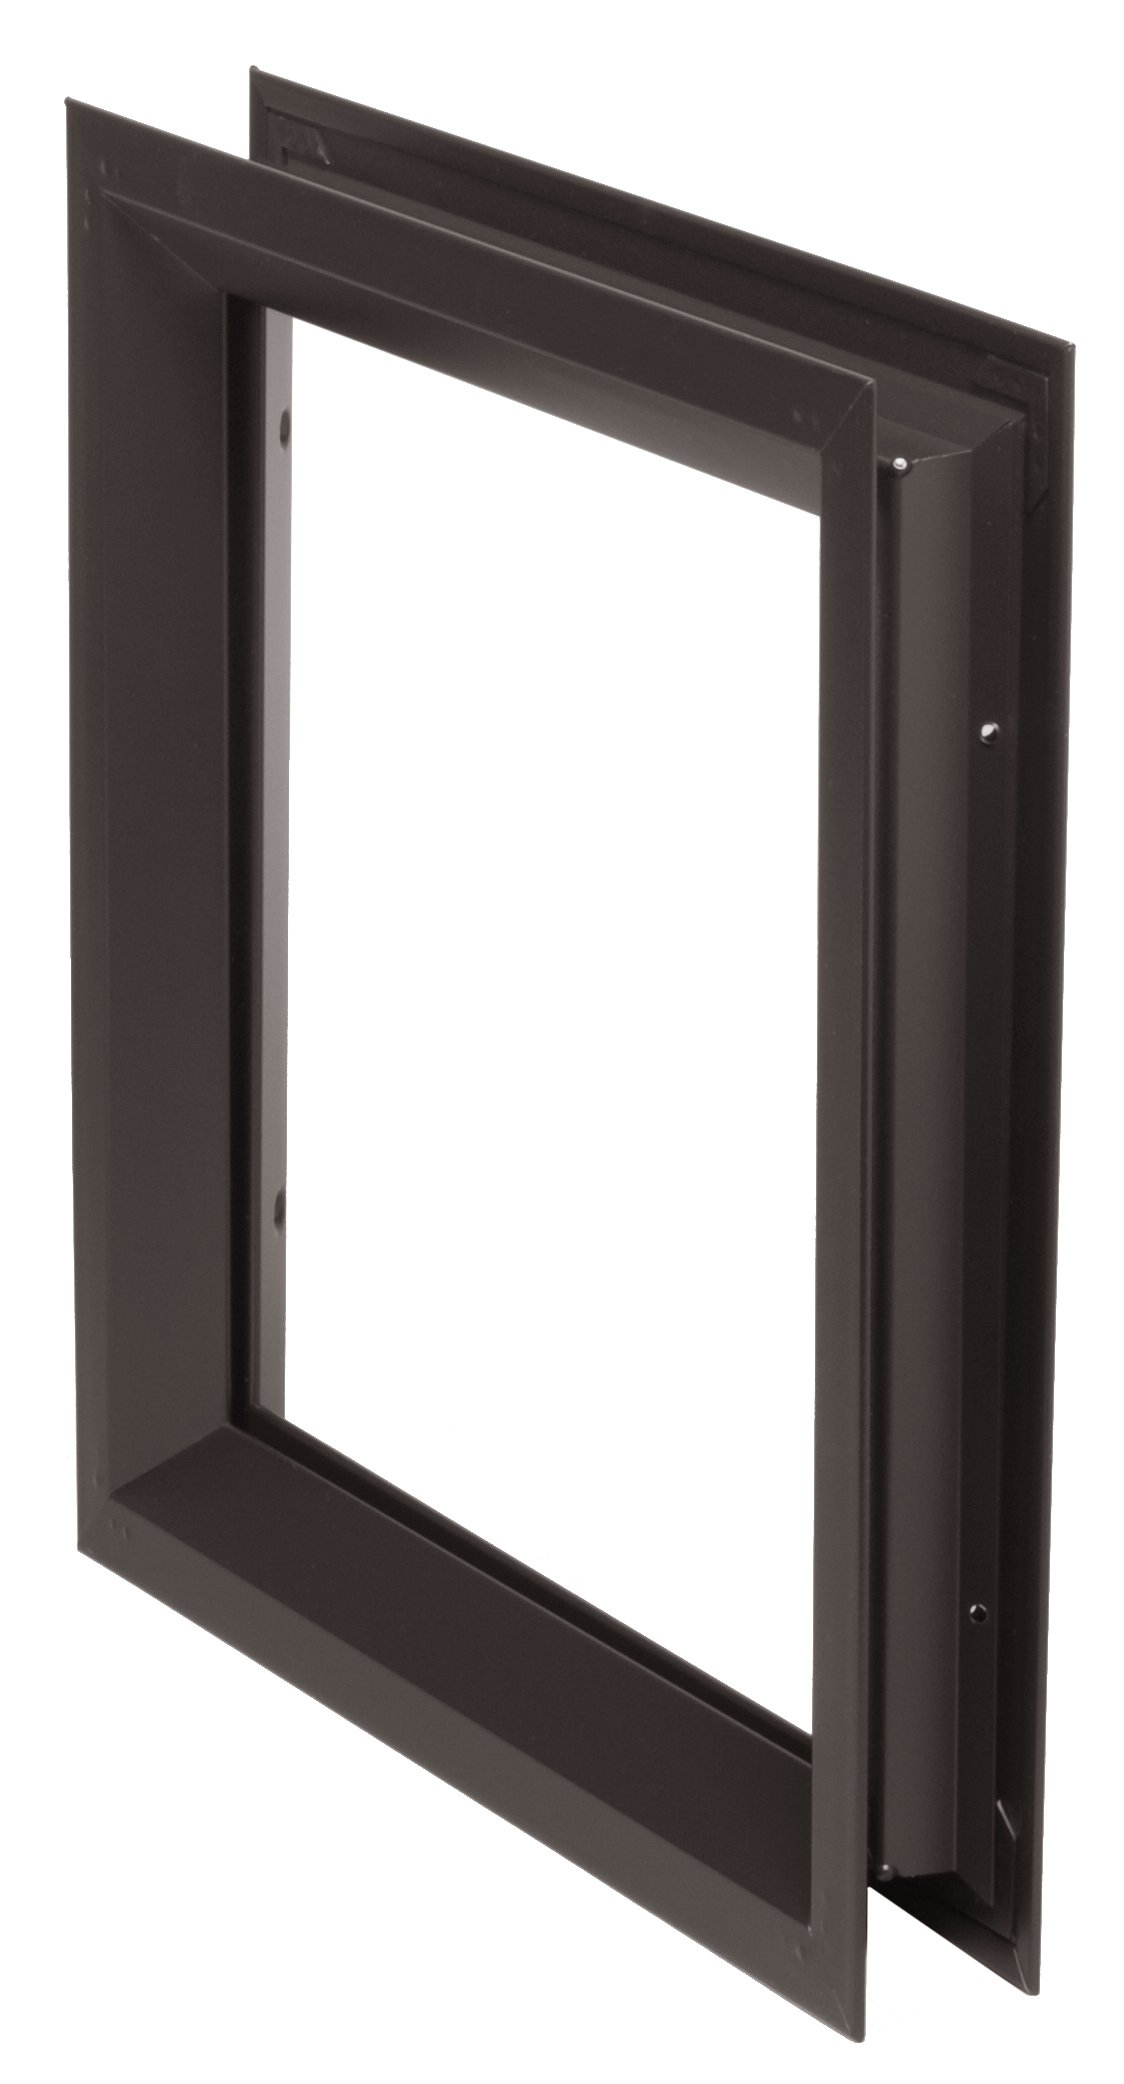 Window Frame Kit, H. 24 in, W. 24 in by National Guard